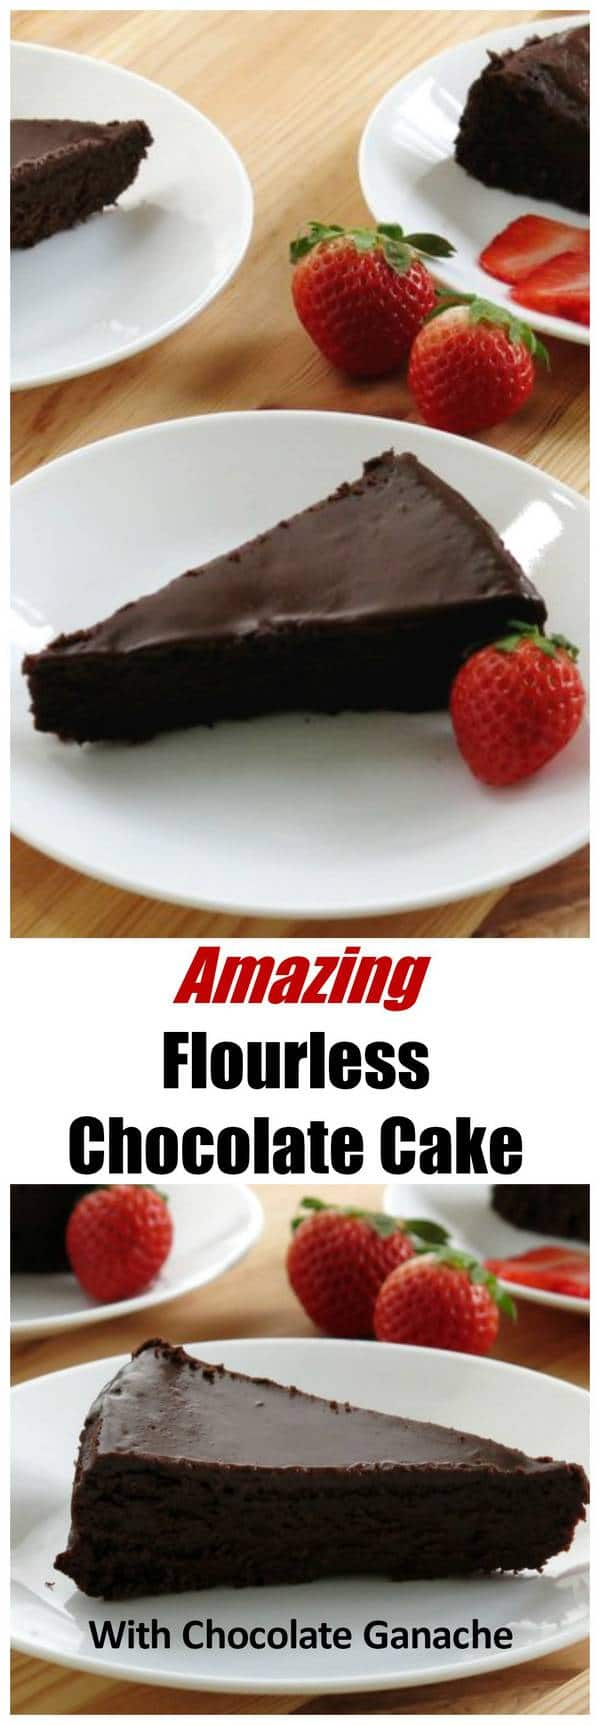 Whole Foods Flourless Chocolate Cake Nutrition